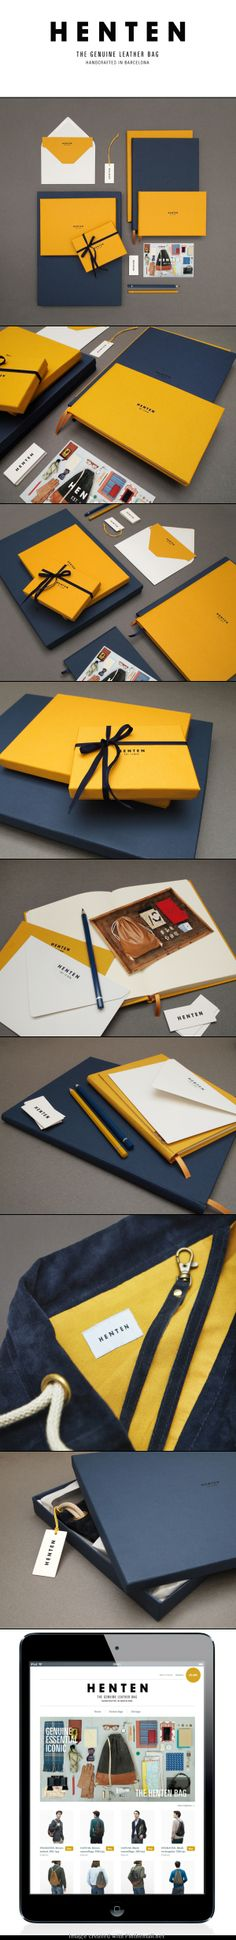 http://www.behance.net/gallery/HENTEN-Corporate-Identity-Packaging/6238309 - created via http://pinthemall.net